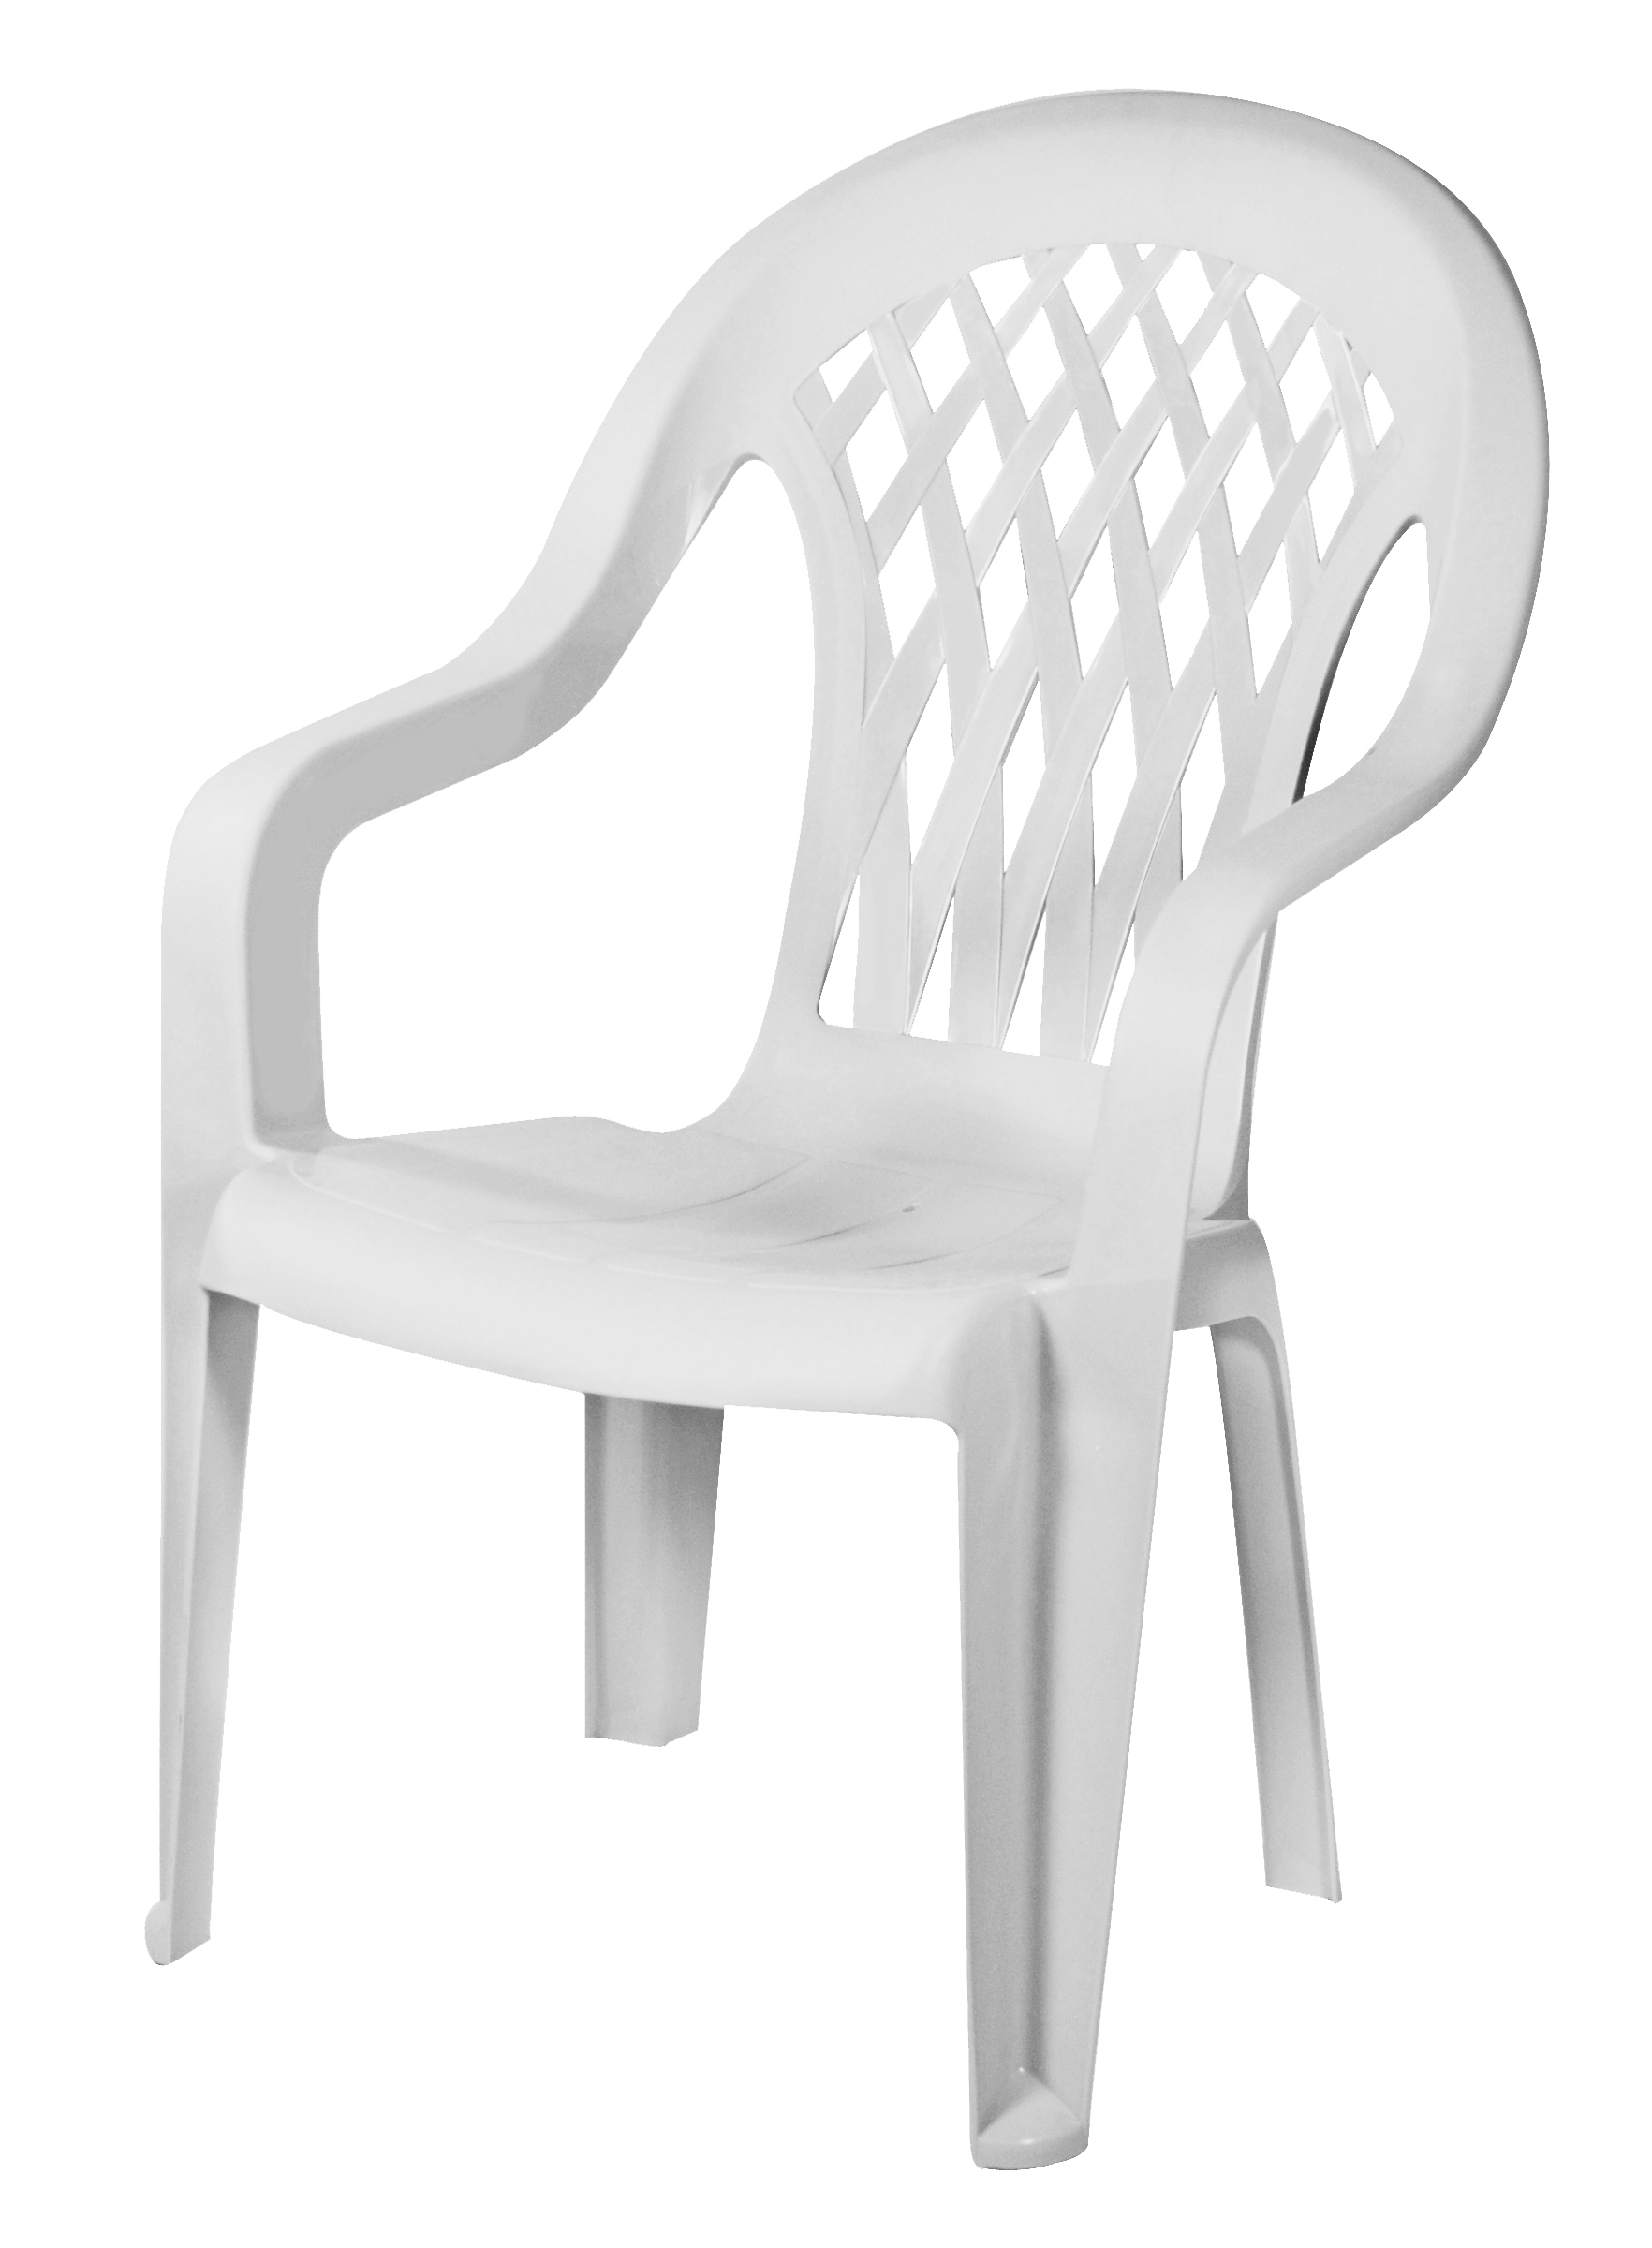 patio chairs for cheap monster high chair gracious living lattice back white